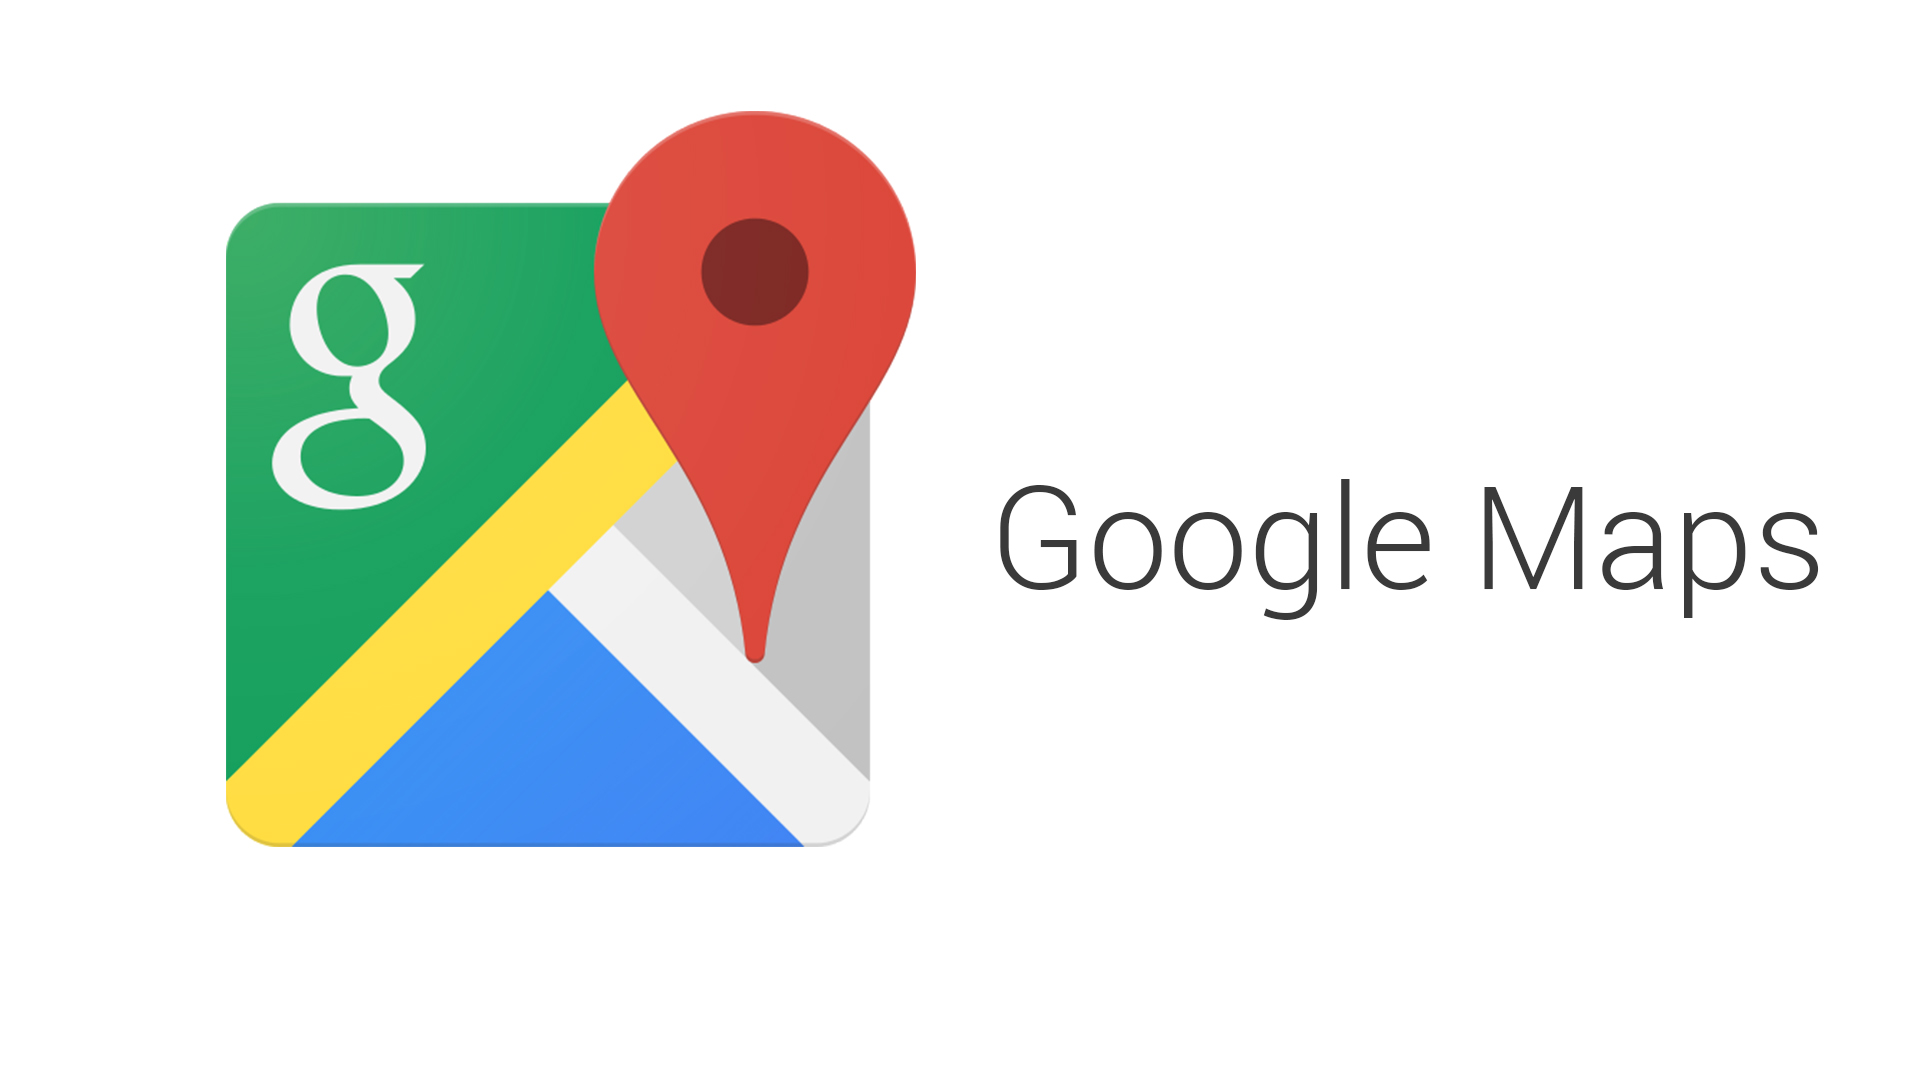 are you using the google maps personal exploration tools